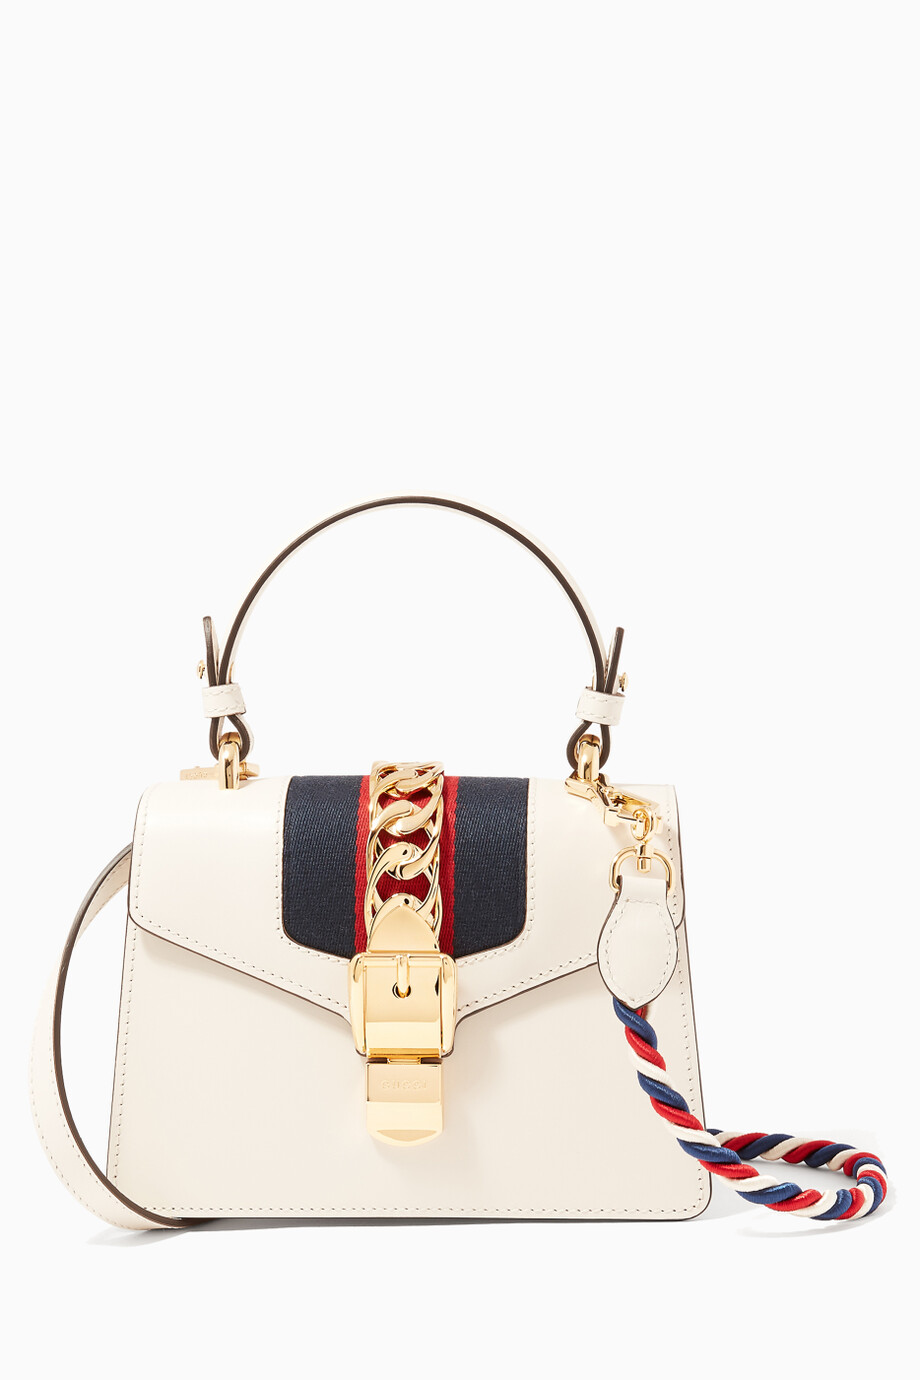 c7eee0f2869 Shop Gucci Neutral Off-white Red Mini Sylvie Top Handle Bag for ...